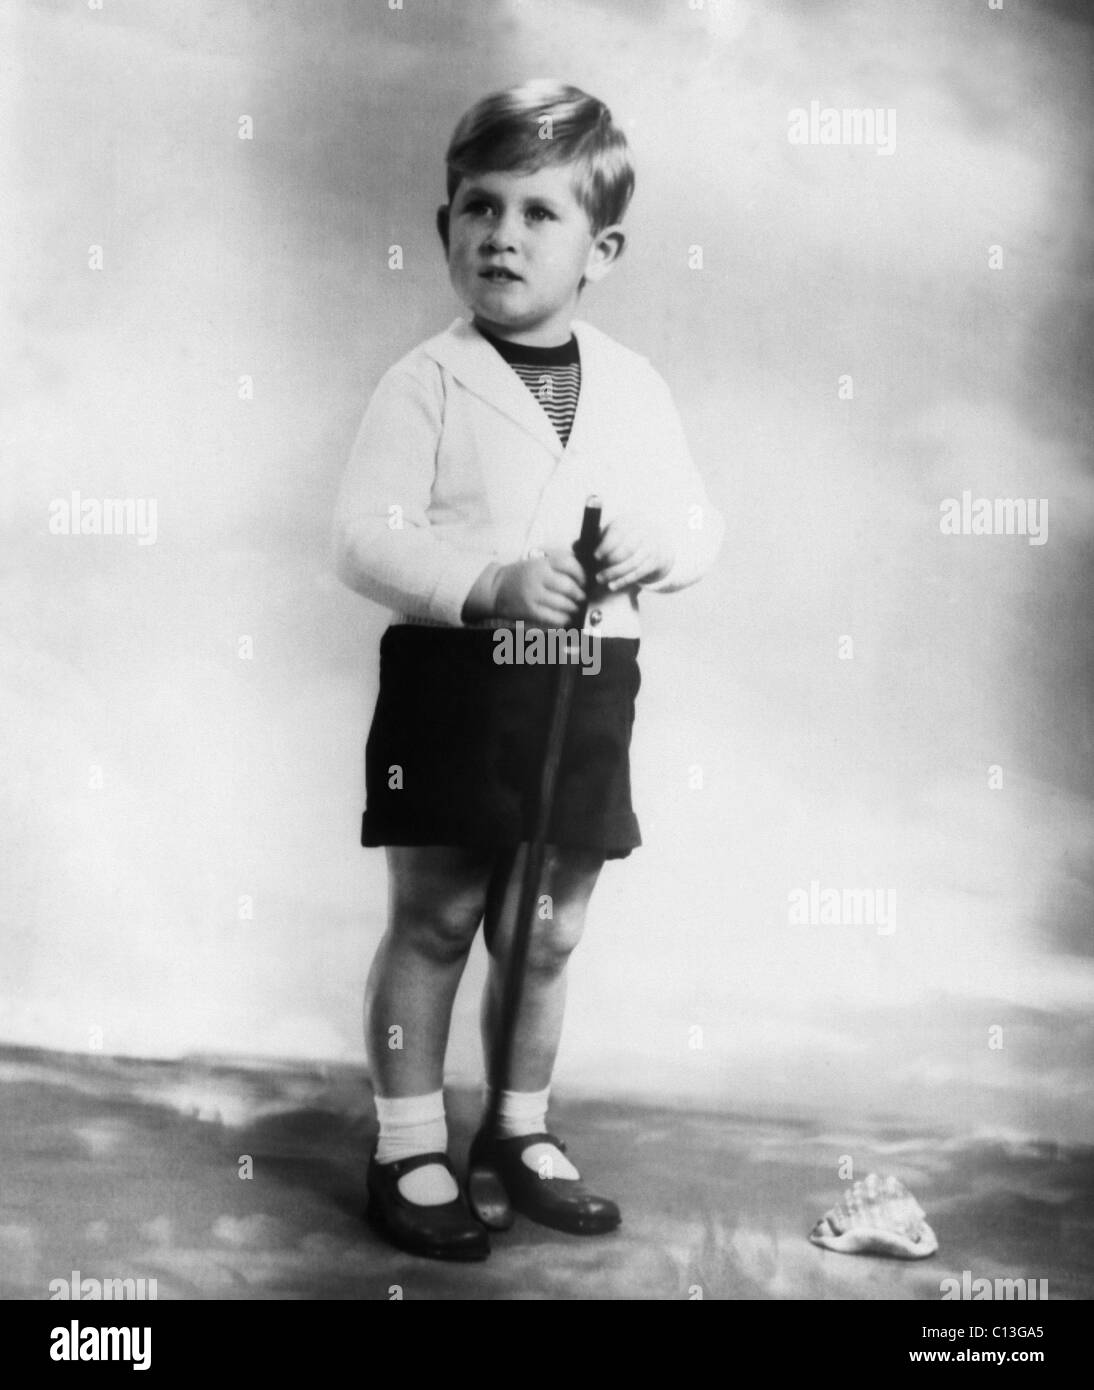 British Royalty. Future Prince of Wales Prince Charles of England, 1951. - Stock Image